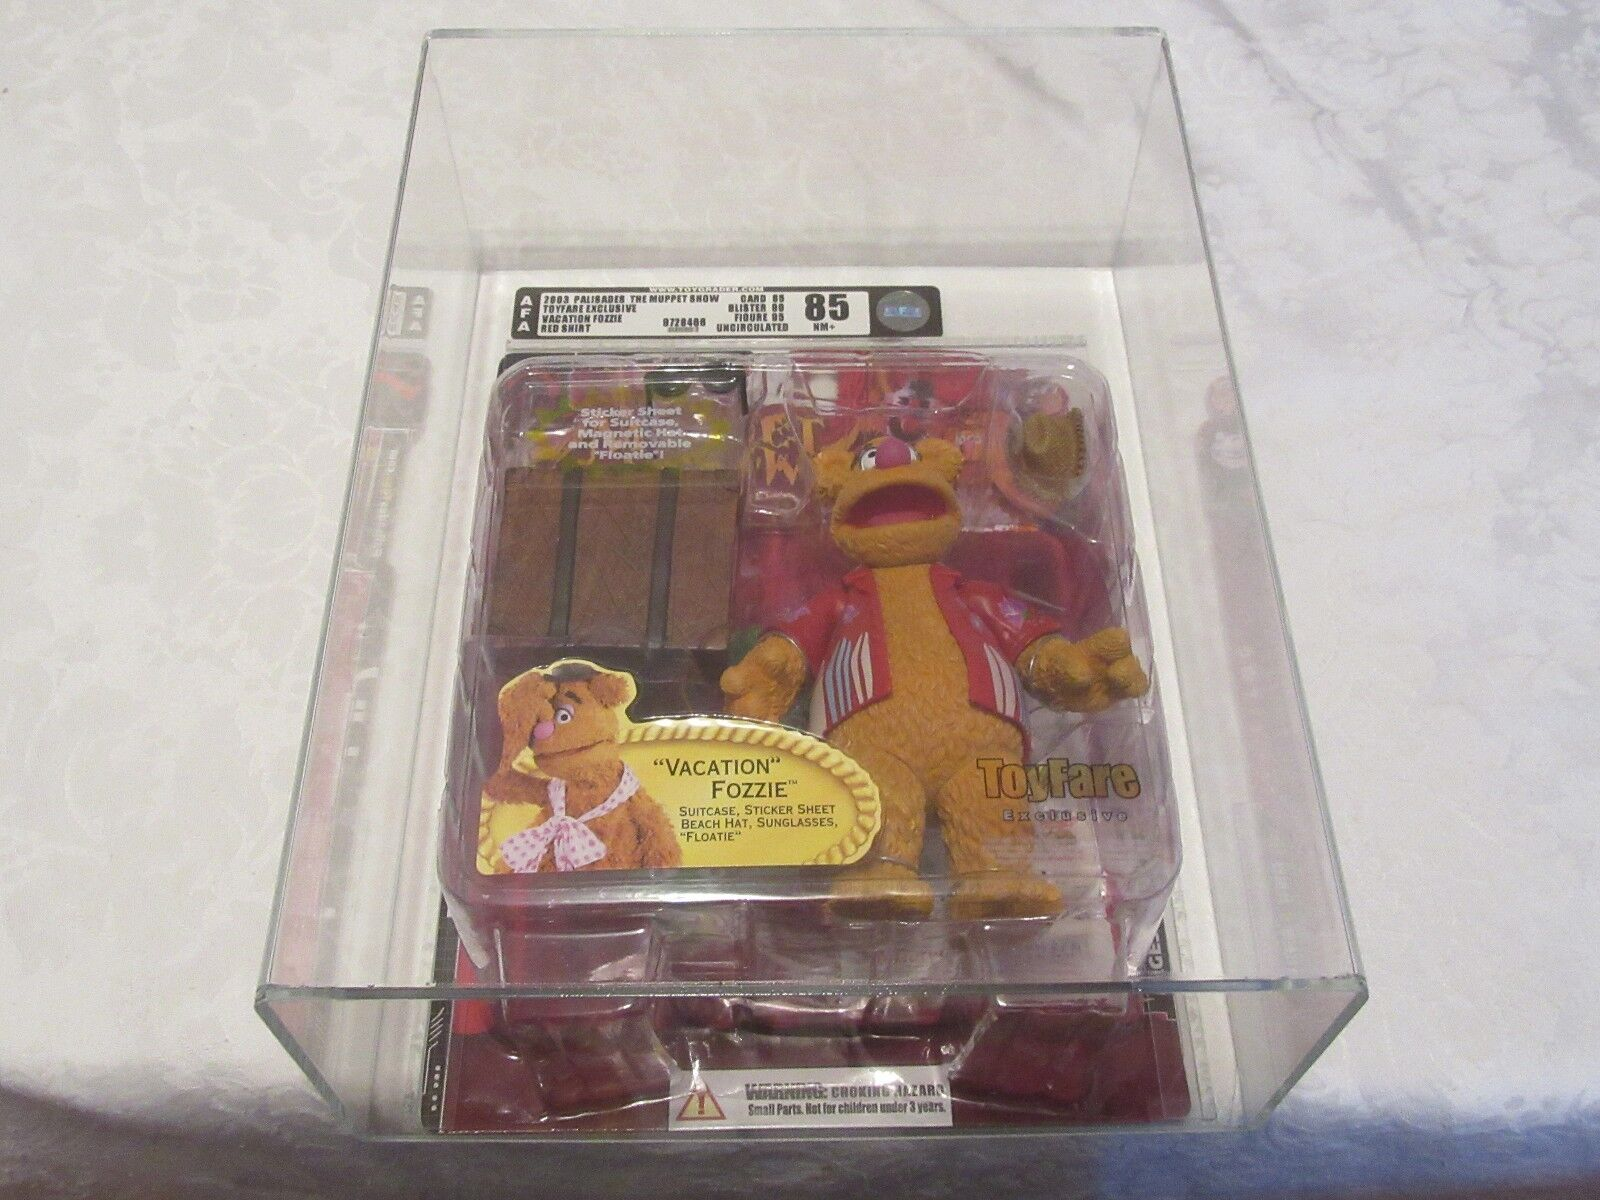 AFA Graded 85 Palisades 2003 Muppet Show Toyfare Exclusive Vacation Fozzie ROT